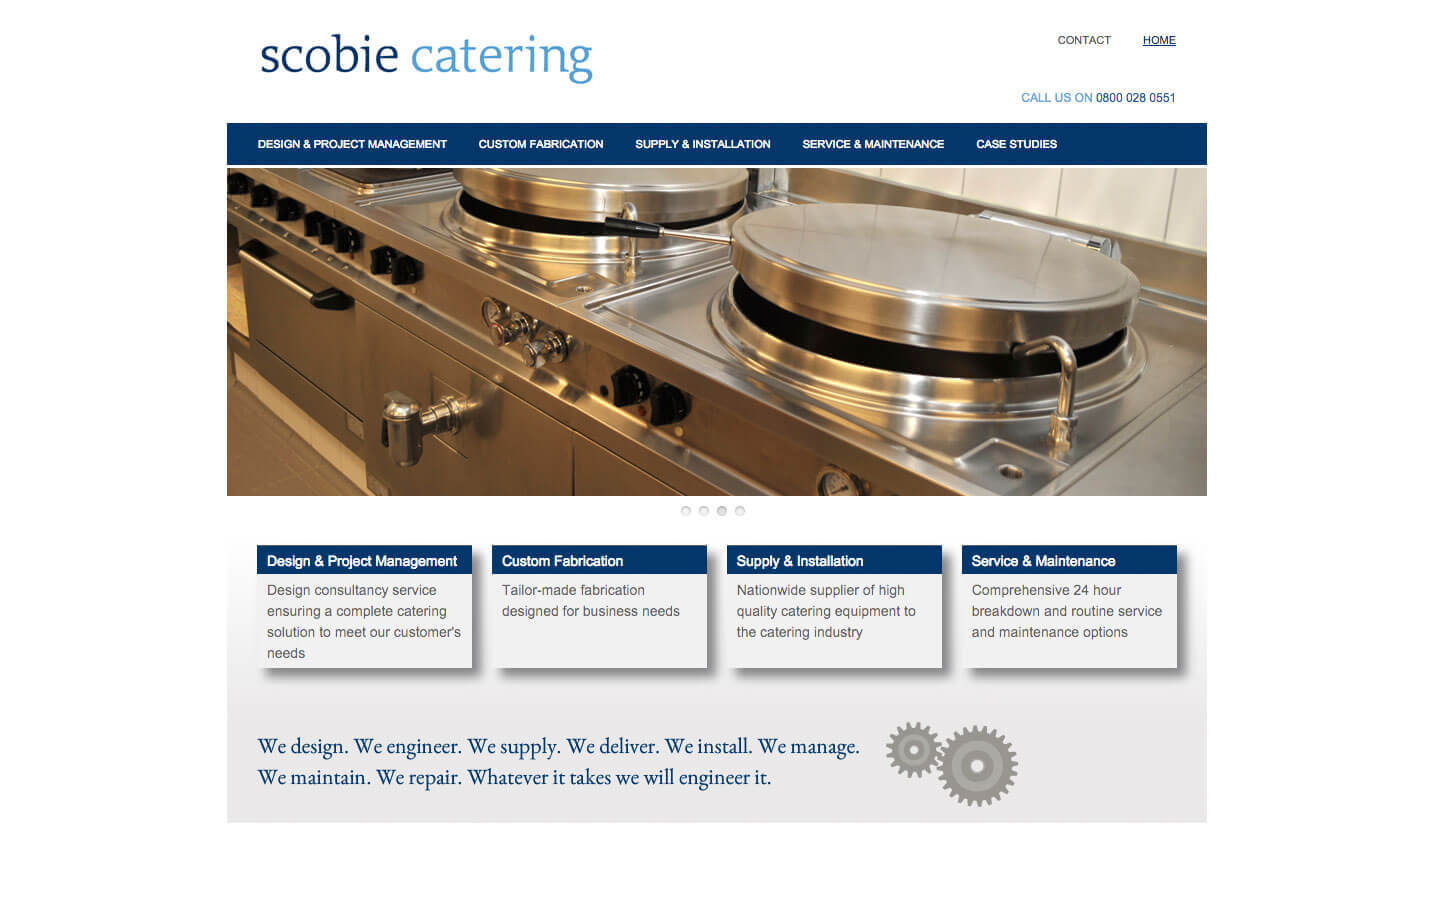 Scobie Catering - Home page